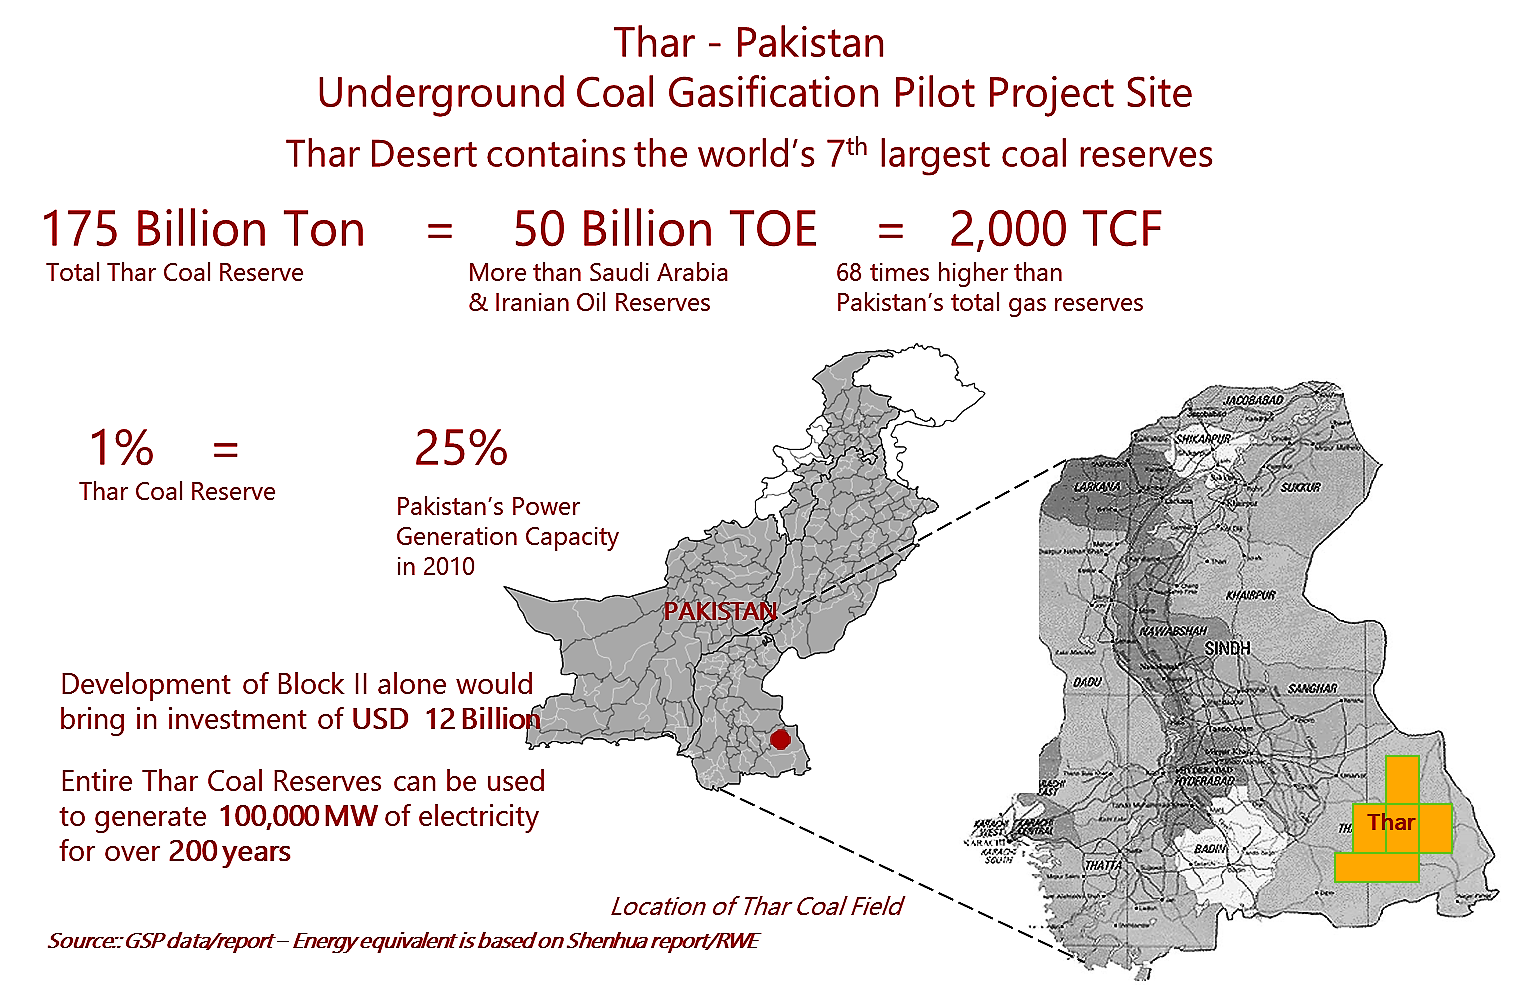 https://sites.google.com/a/themughals.net/www/initiatives-1/project-ucg-ctl-pak/mughals_chp_web_3-pak-thar-pilot-project.png